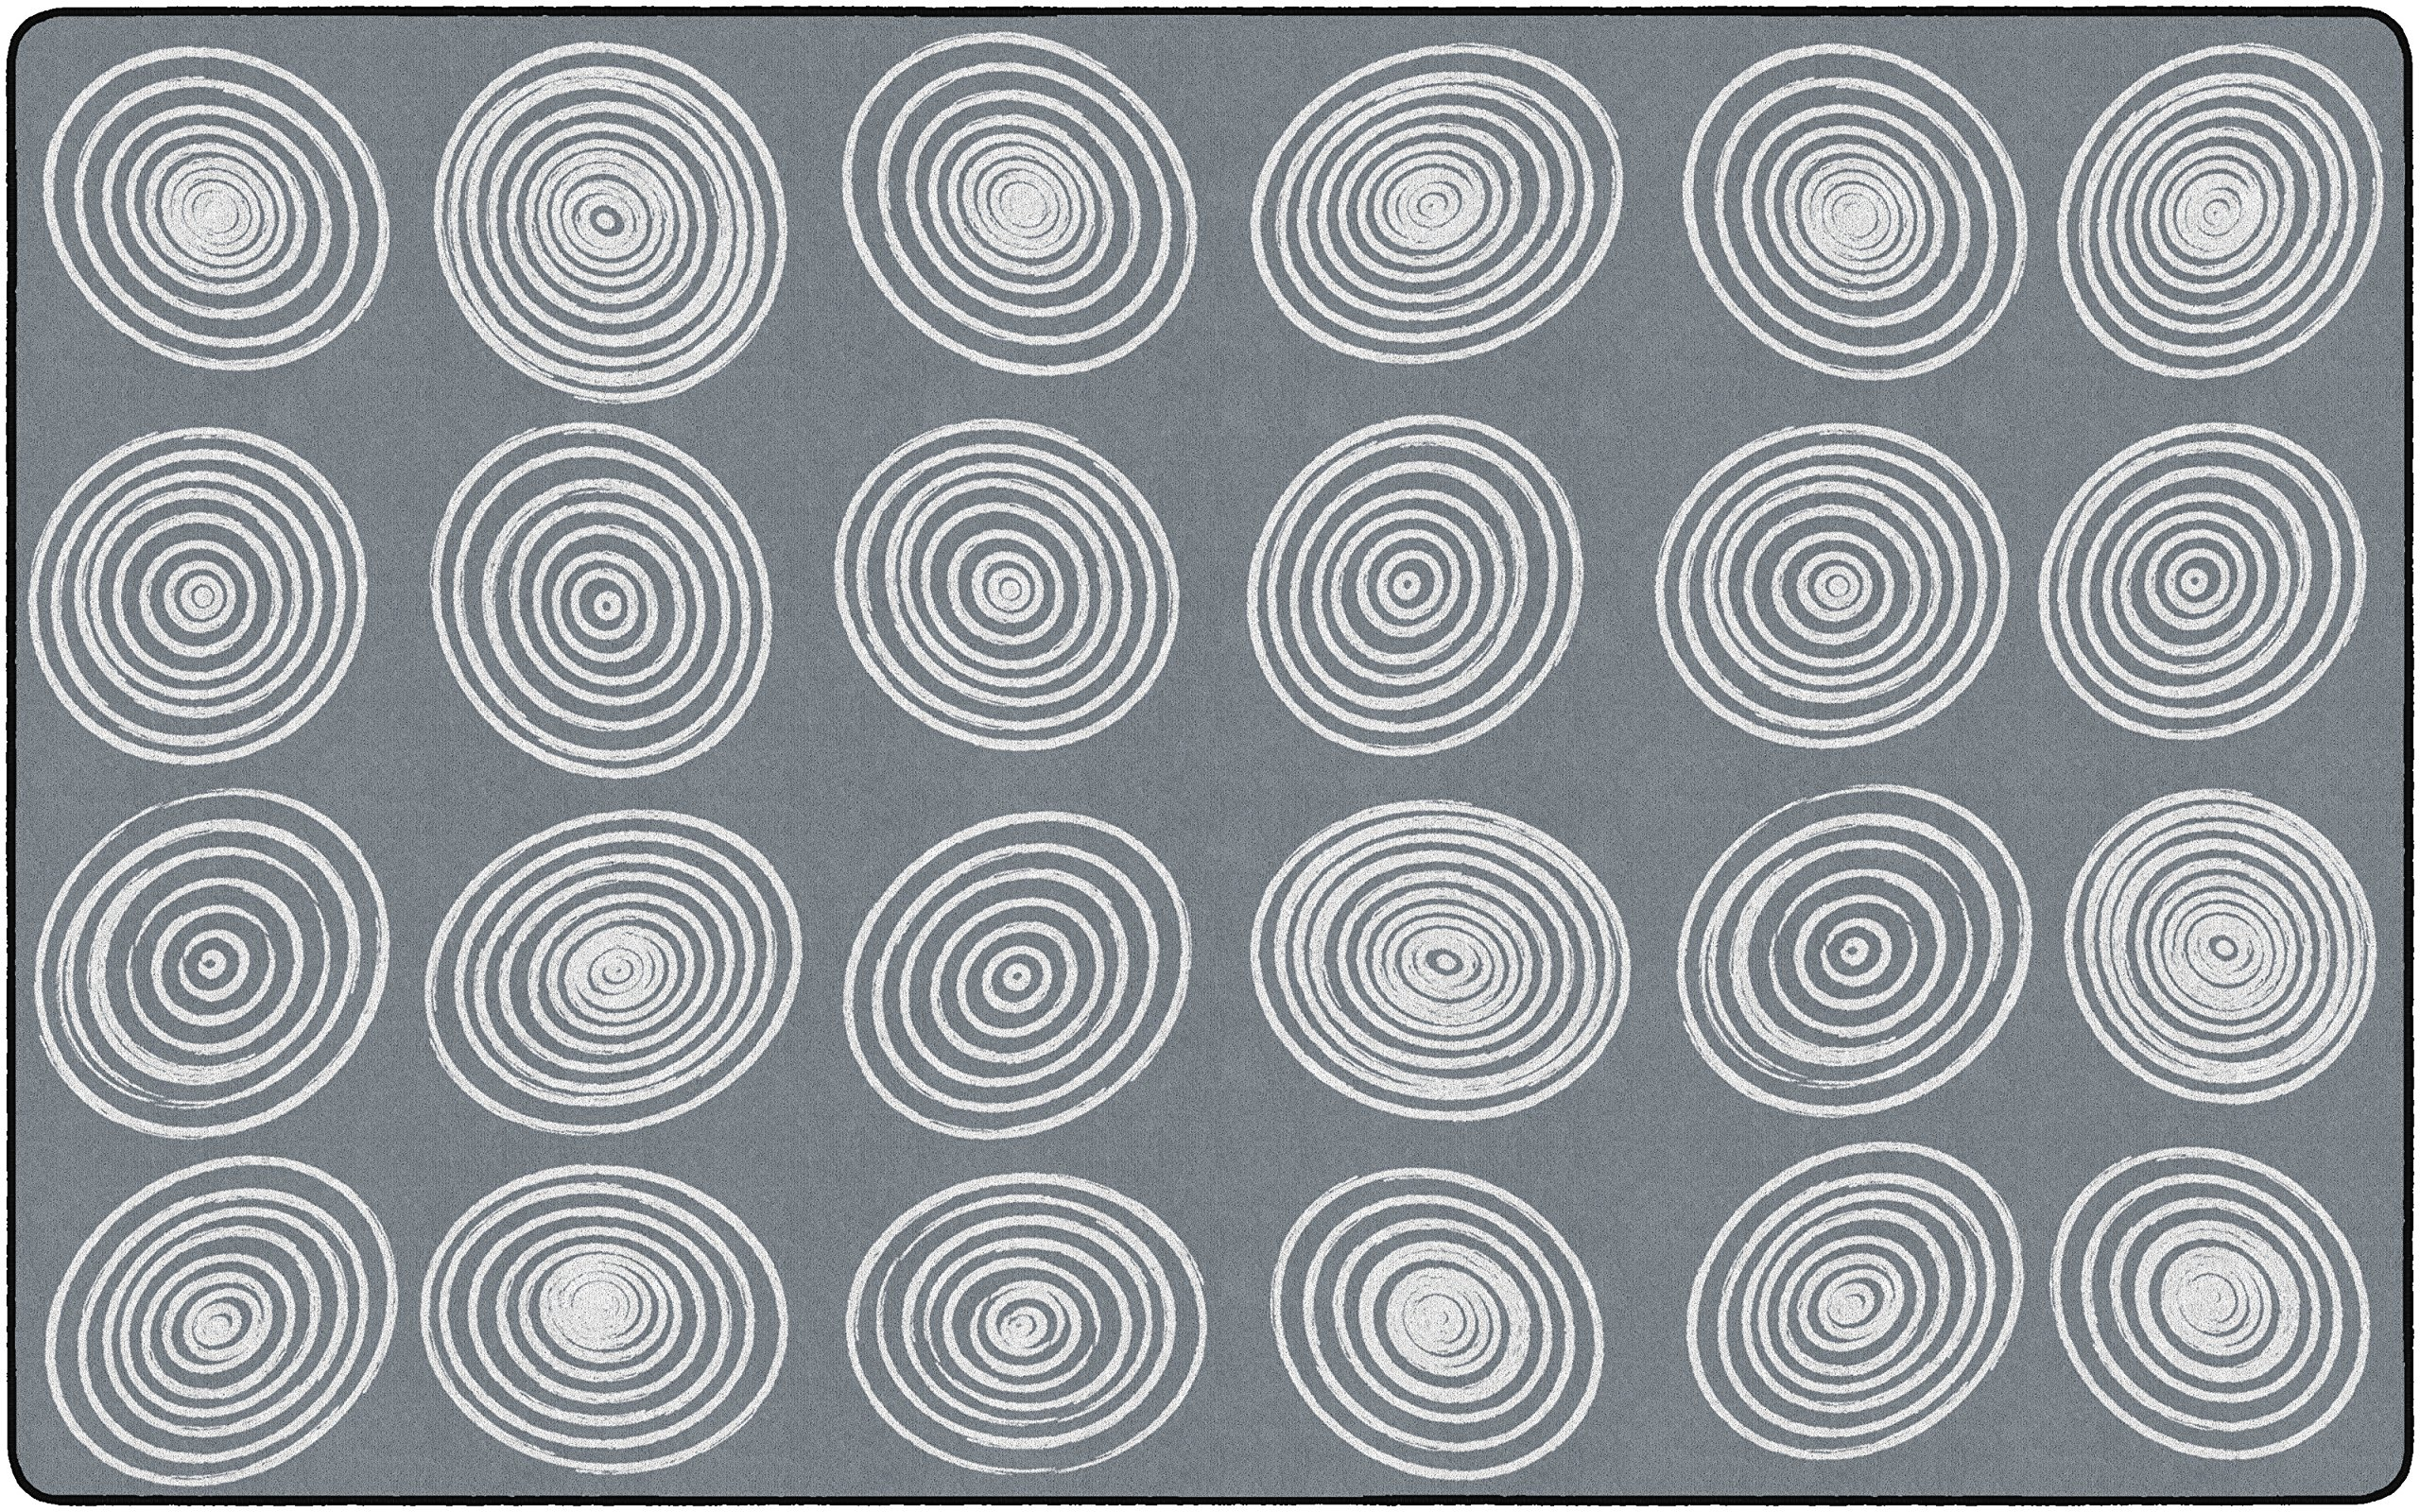 Flagship Carpets FE415-44A Circles Grey & White (Seats 24), Children's Classroom Seating Rug, Rectangle, 7'6''x12' by Flagship Carpets